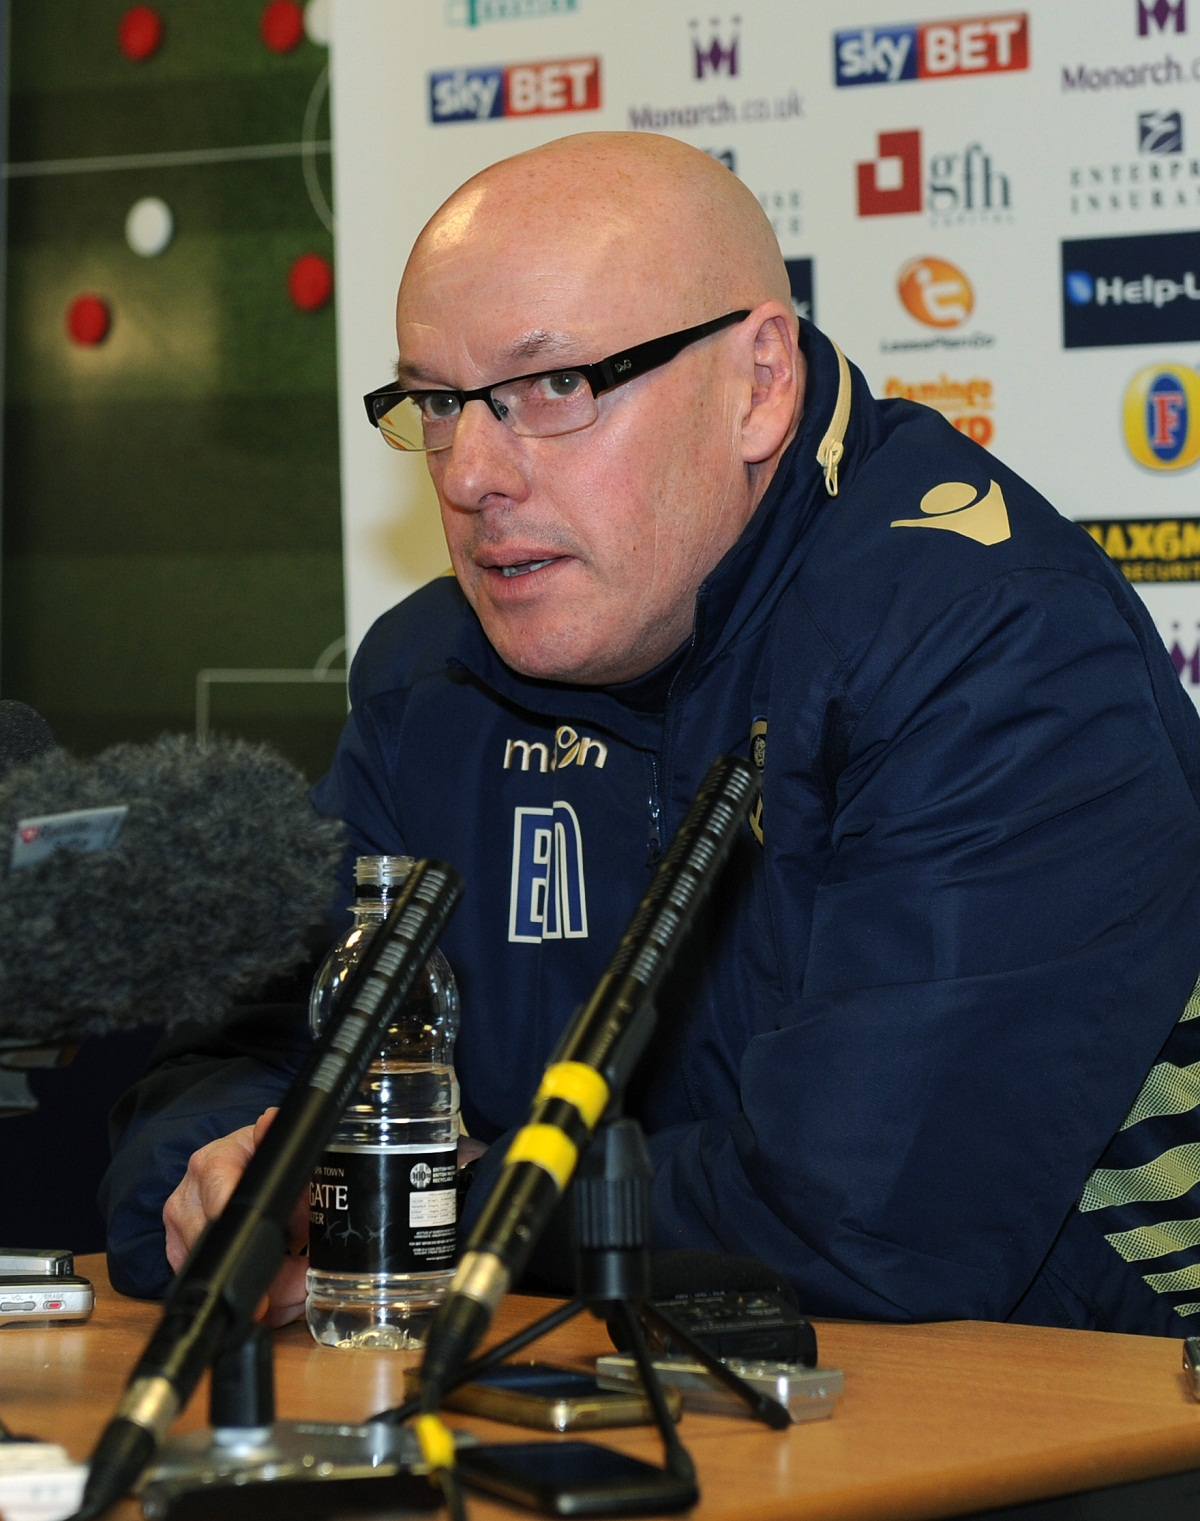 Leeds United manager Brian McDermott is being given massive backing by their supporters